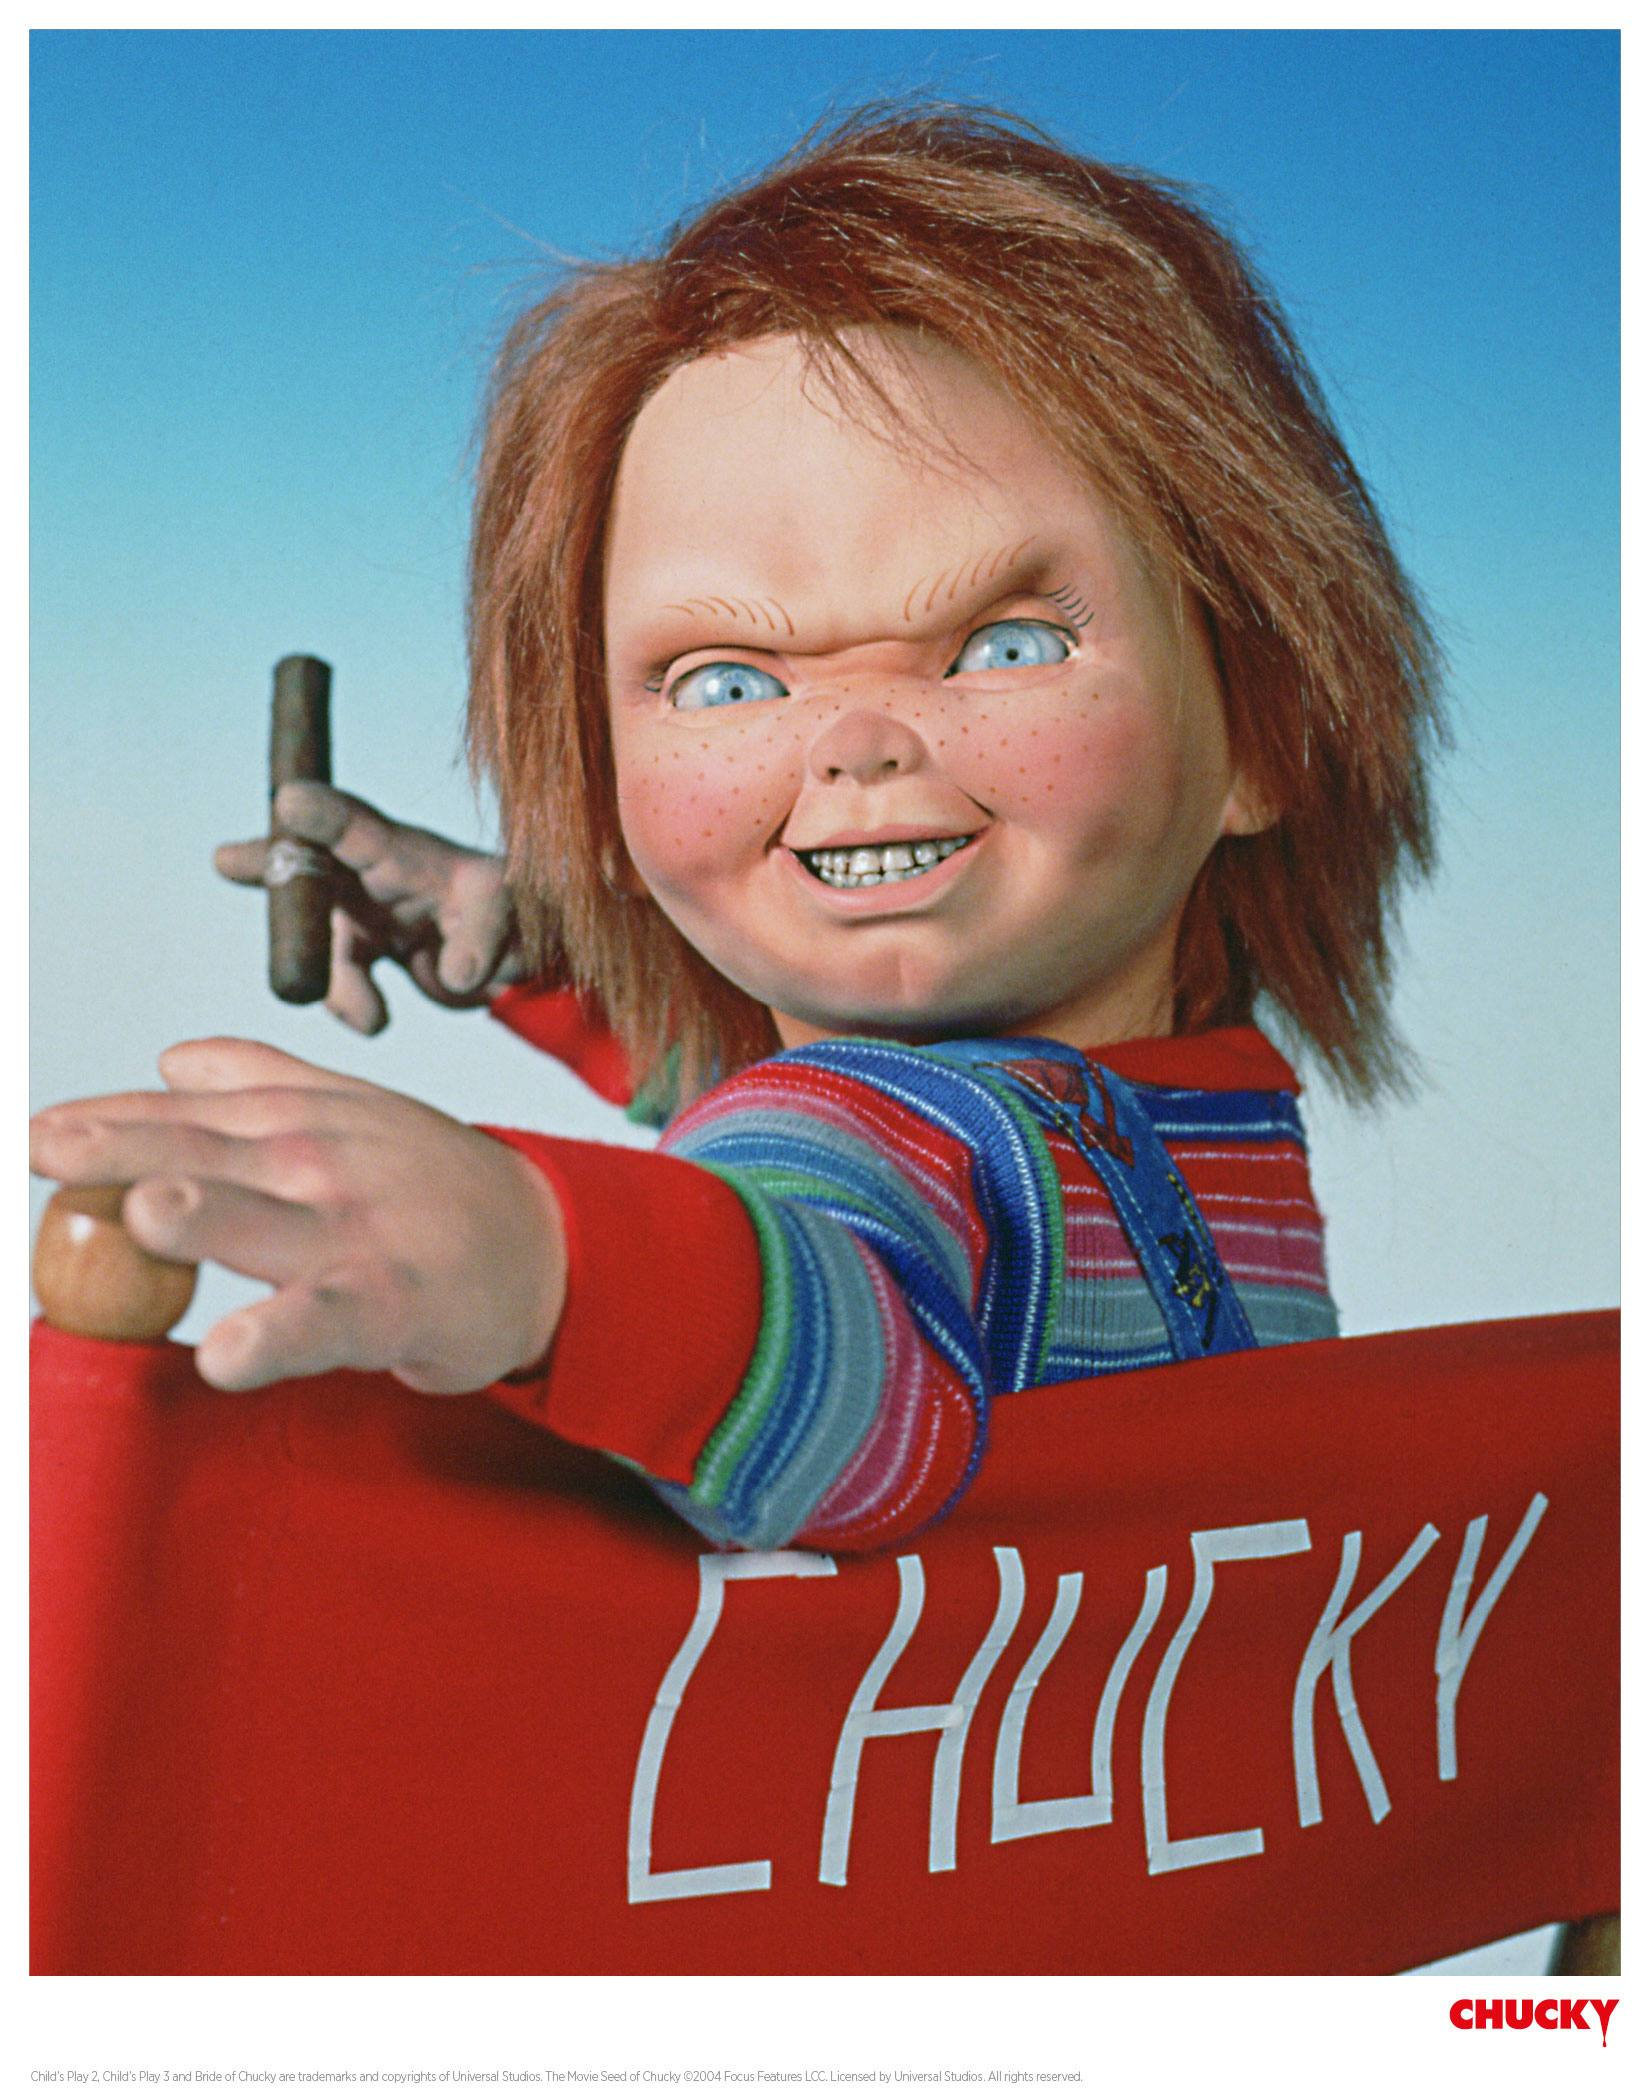 Child´s Play Art Print Director Chucky 35 x 28 cm